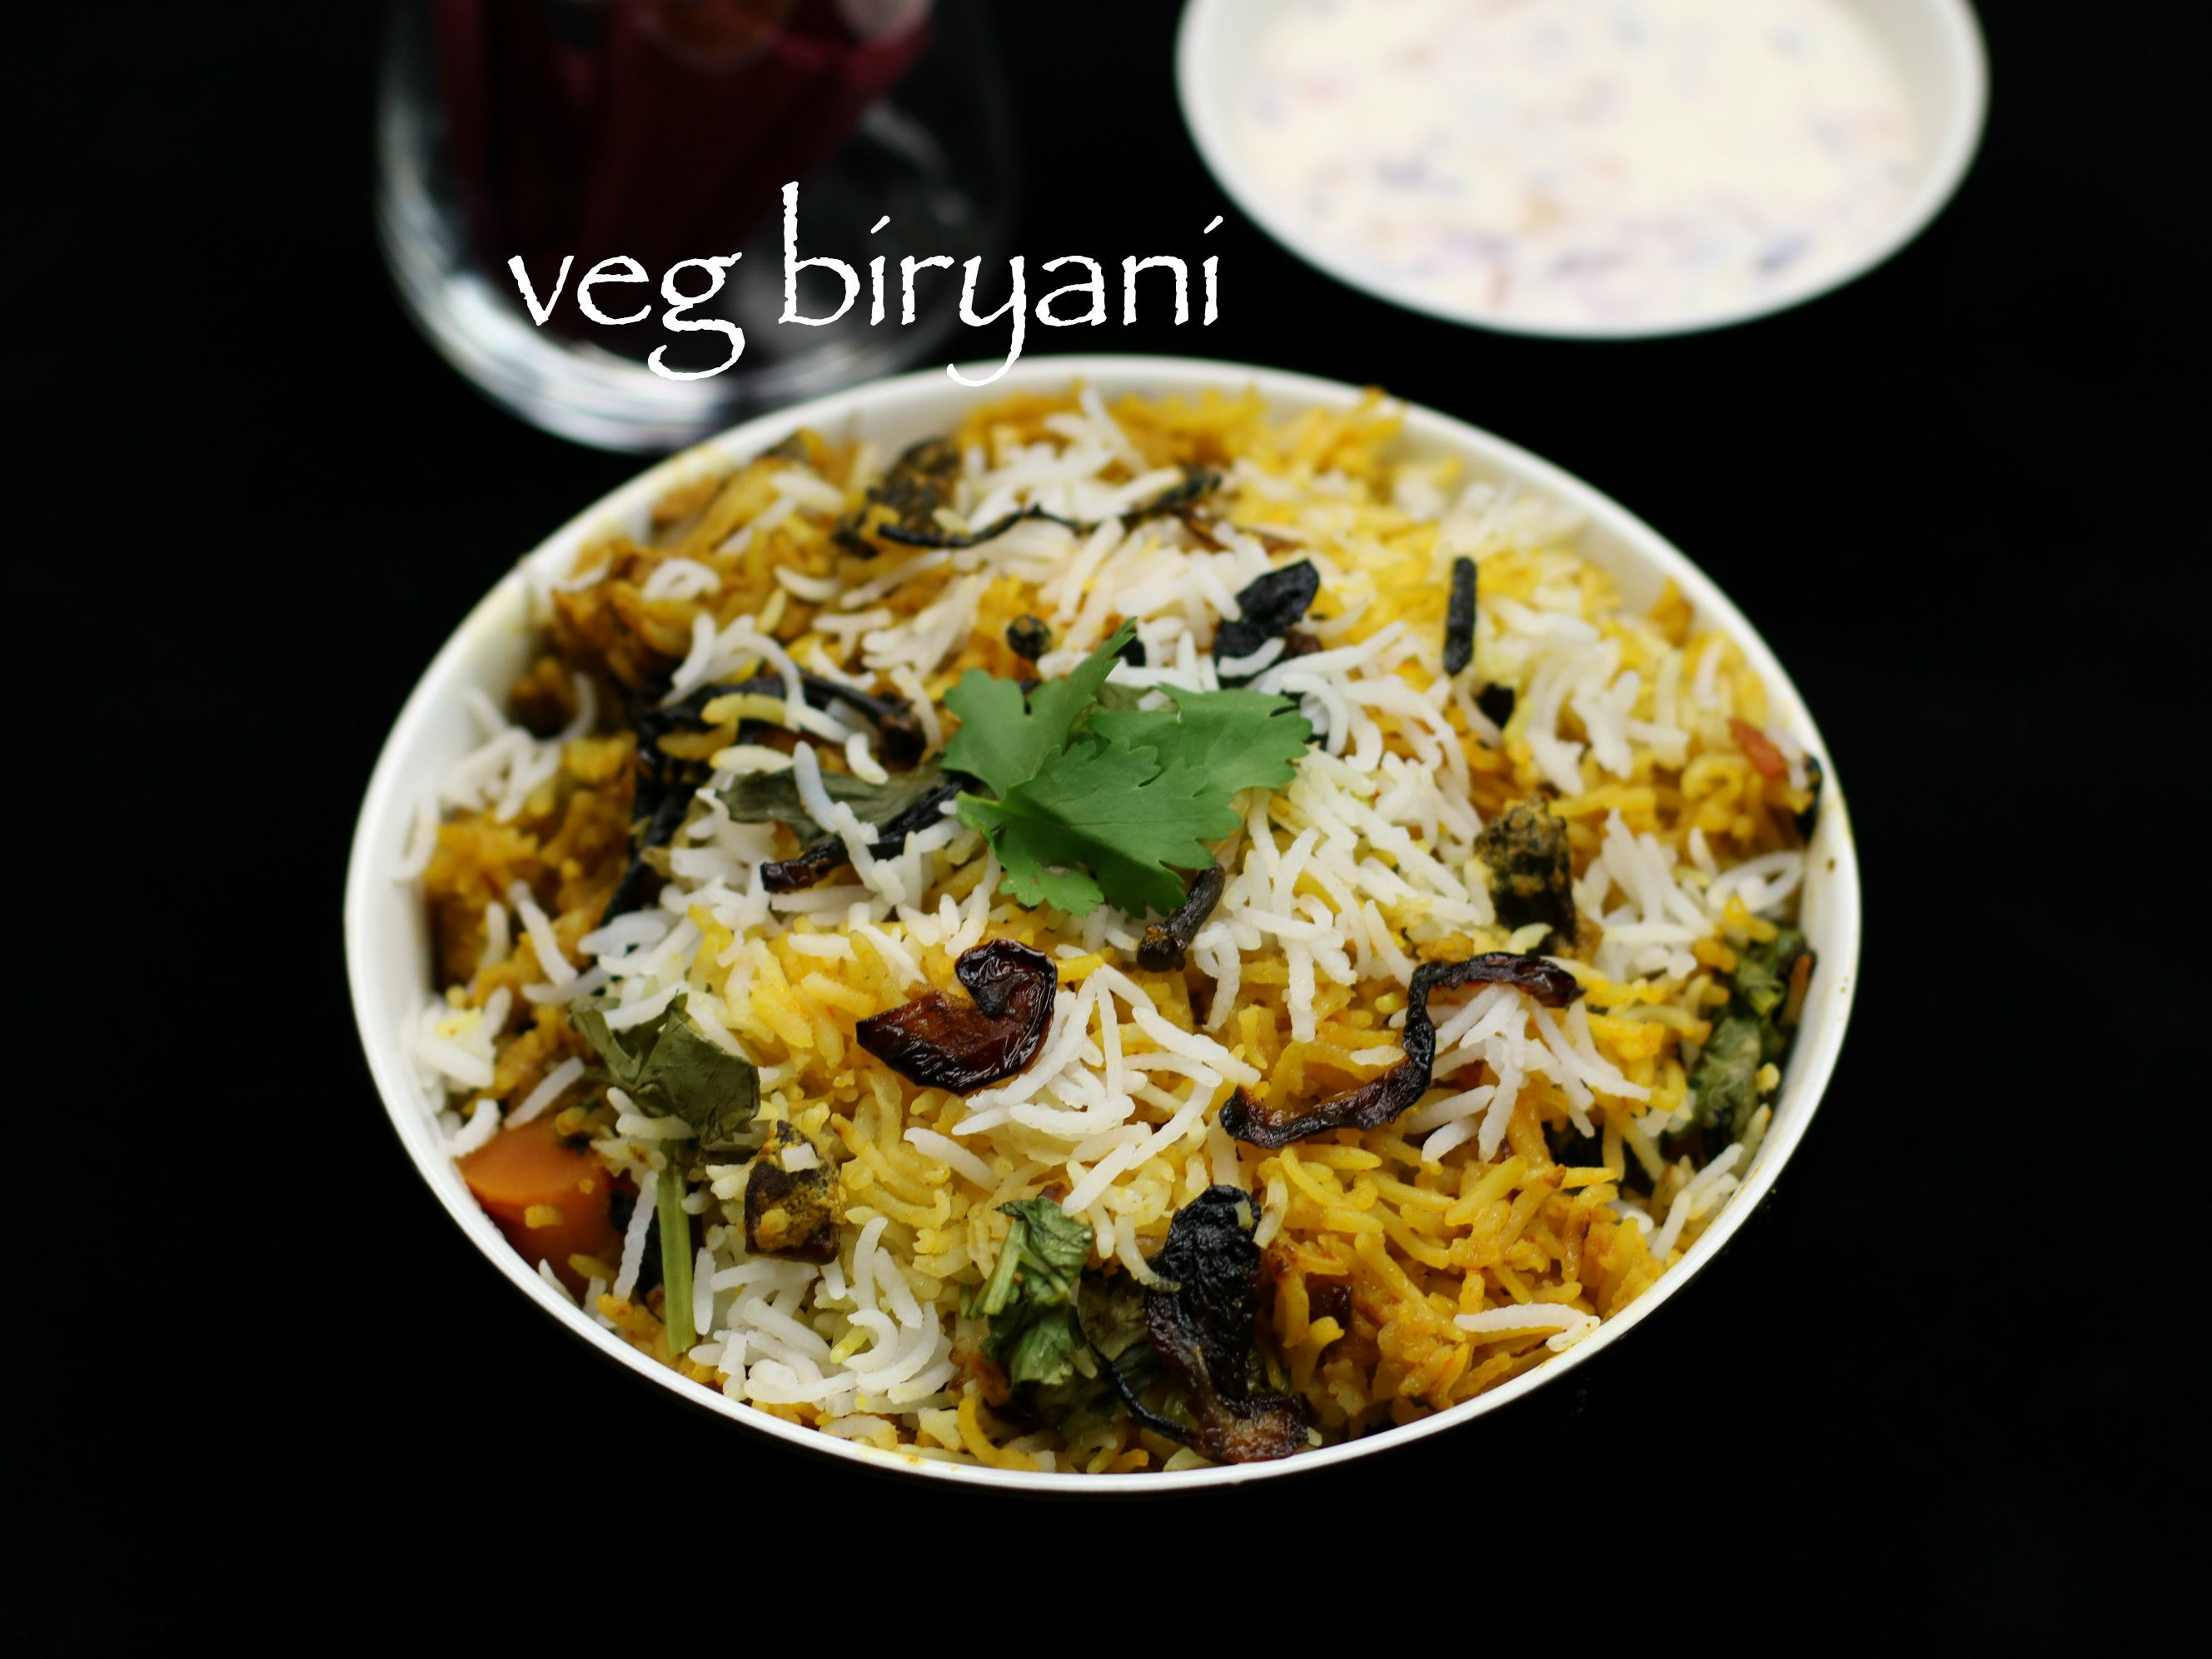 Hyderabadi vegetable biryani recipe veg biryani recipe learn how hyderabadi vegetable biryani recipe veg biryani recipe learn how to make veg biryani in forumfinder